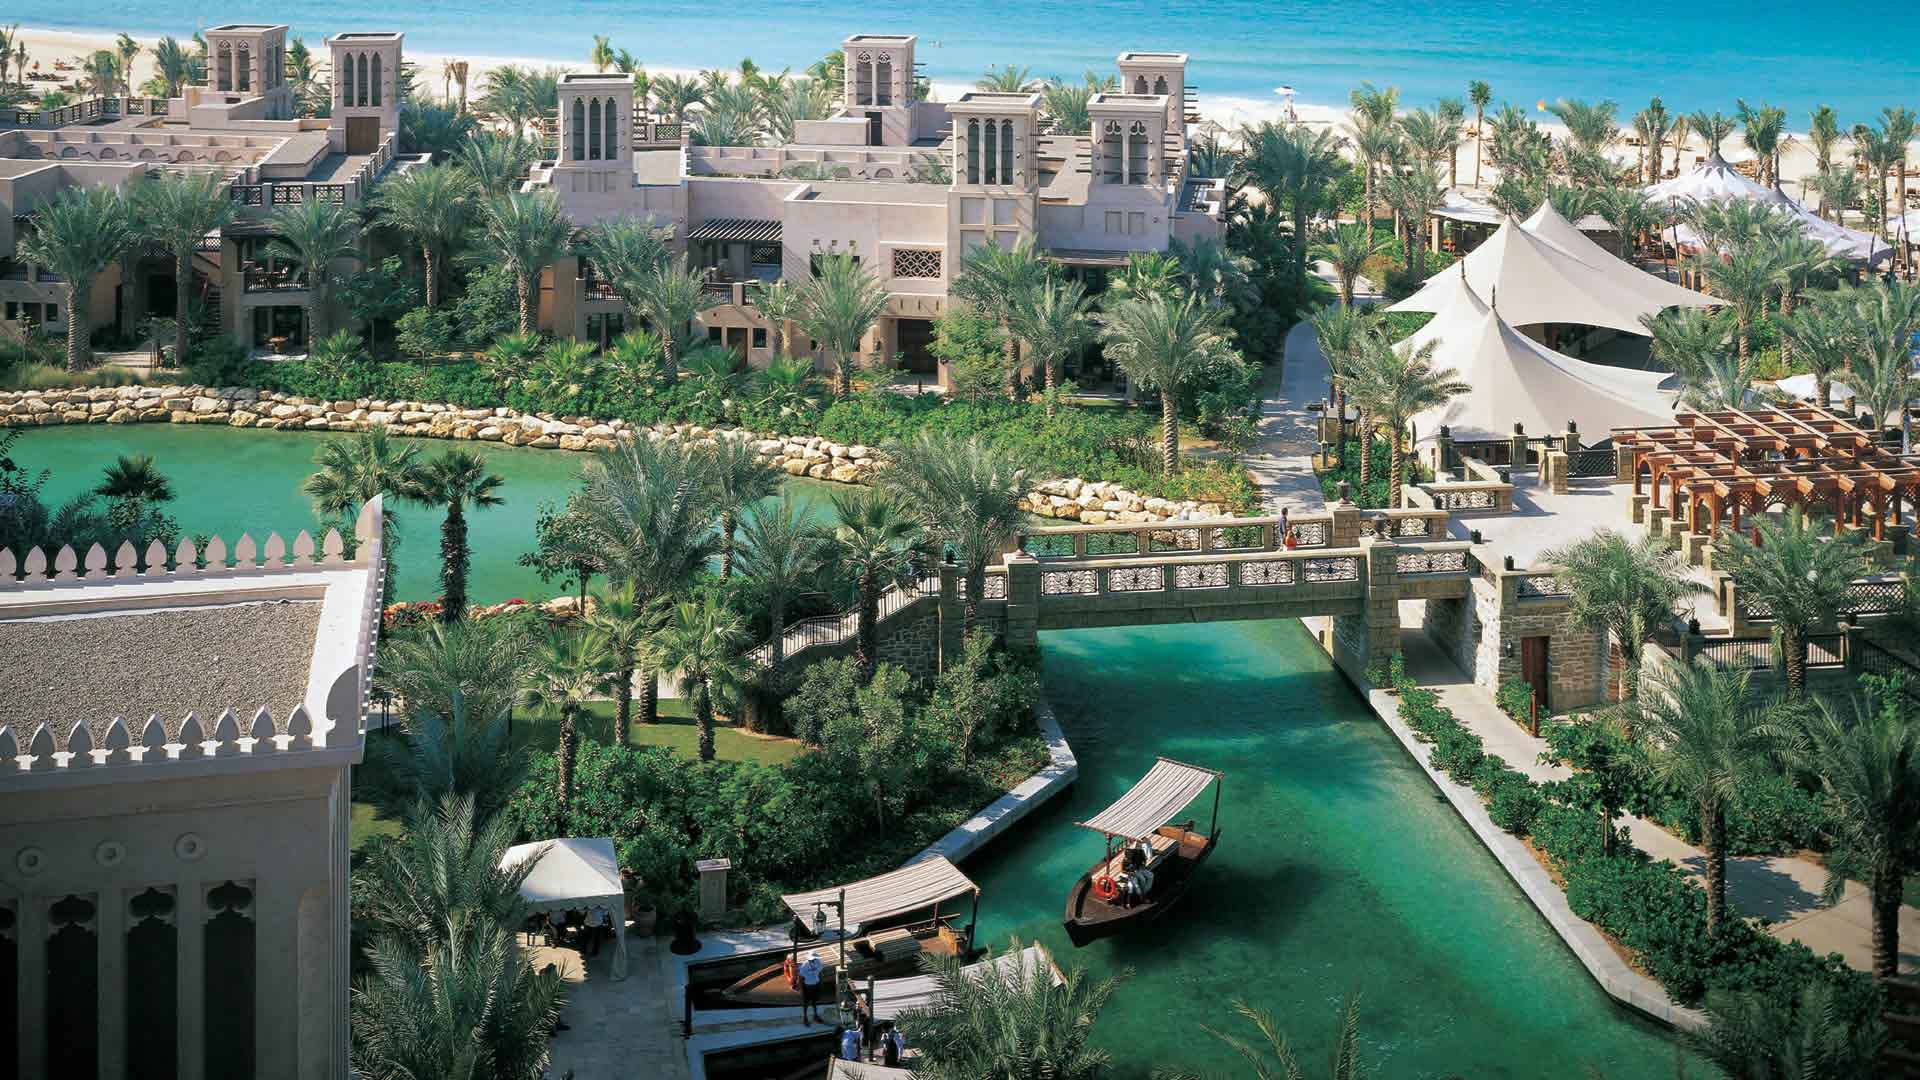 Madinat Jumeirah waterways